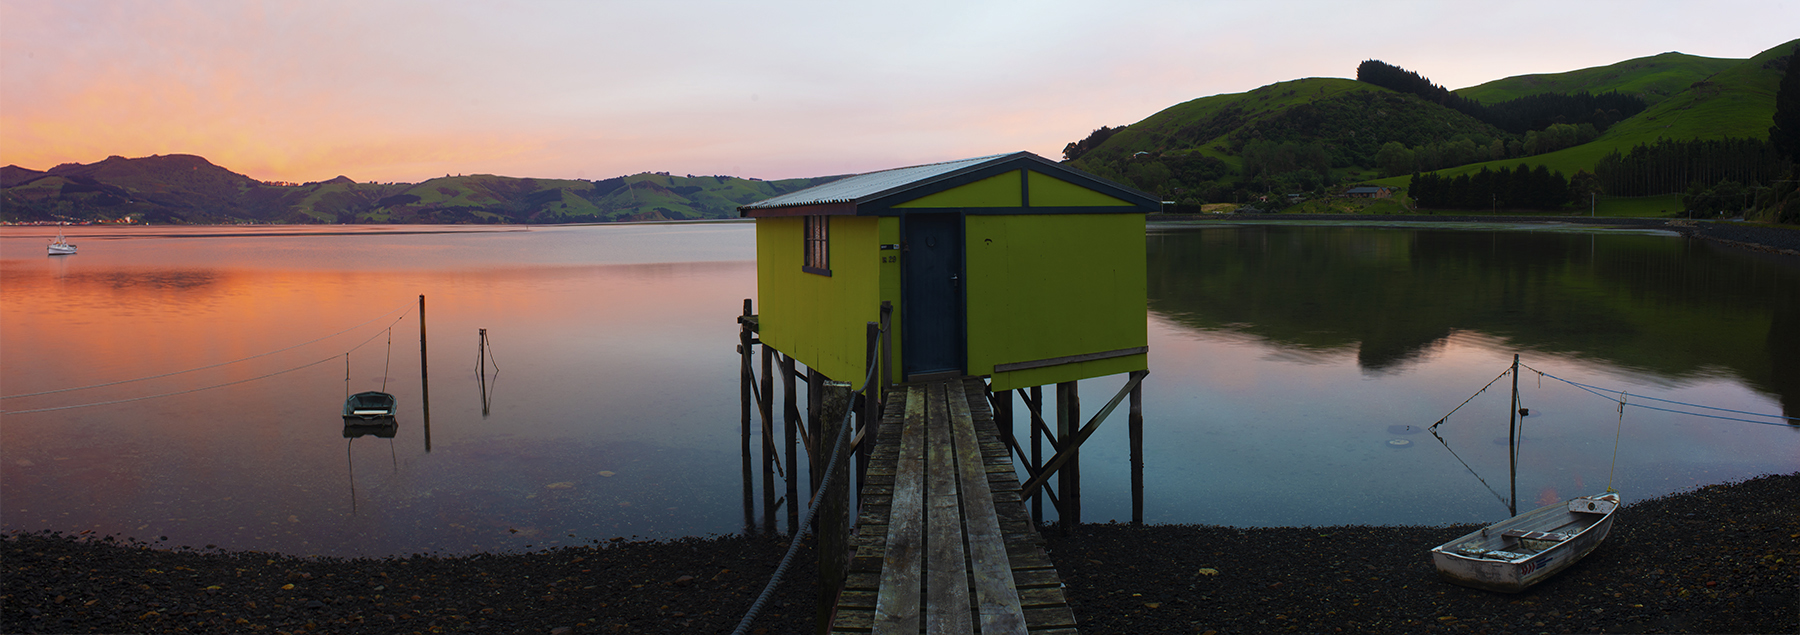 Tranquil Morning, Otago Peninsula, New Zealand. A Limited Edition Fine Art Landscape Photograph by Richard Hume